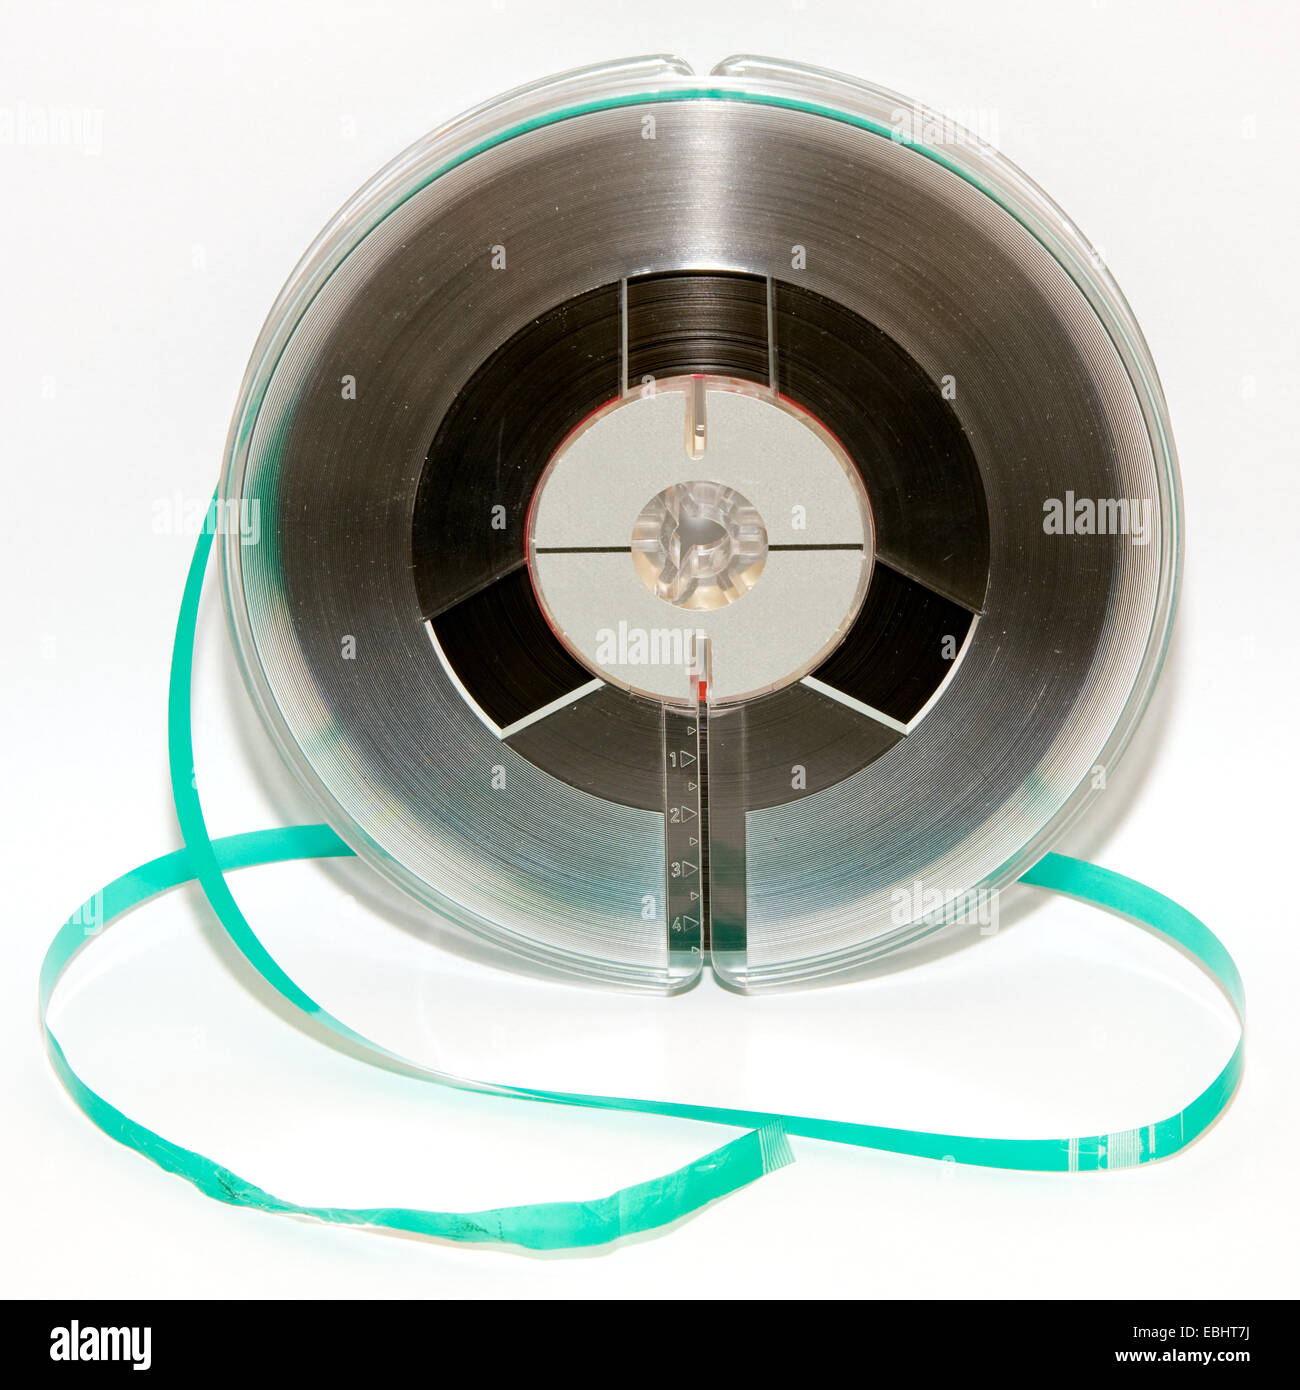 Old magnetic tape reel, used for analog sound recording - Stock Image